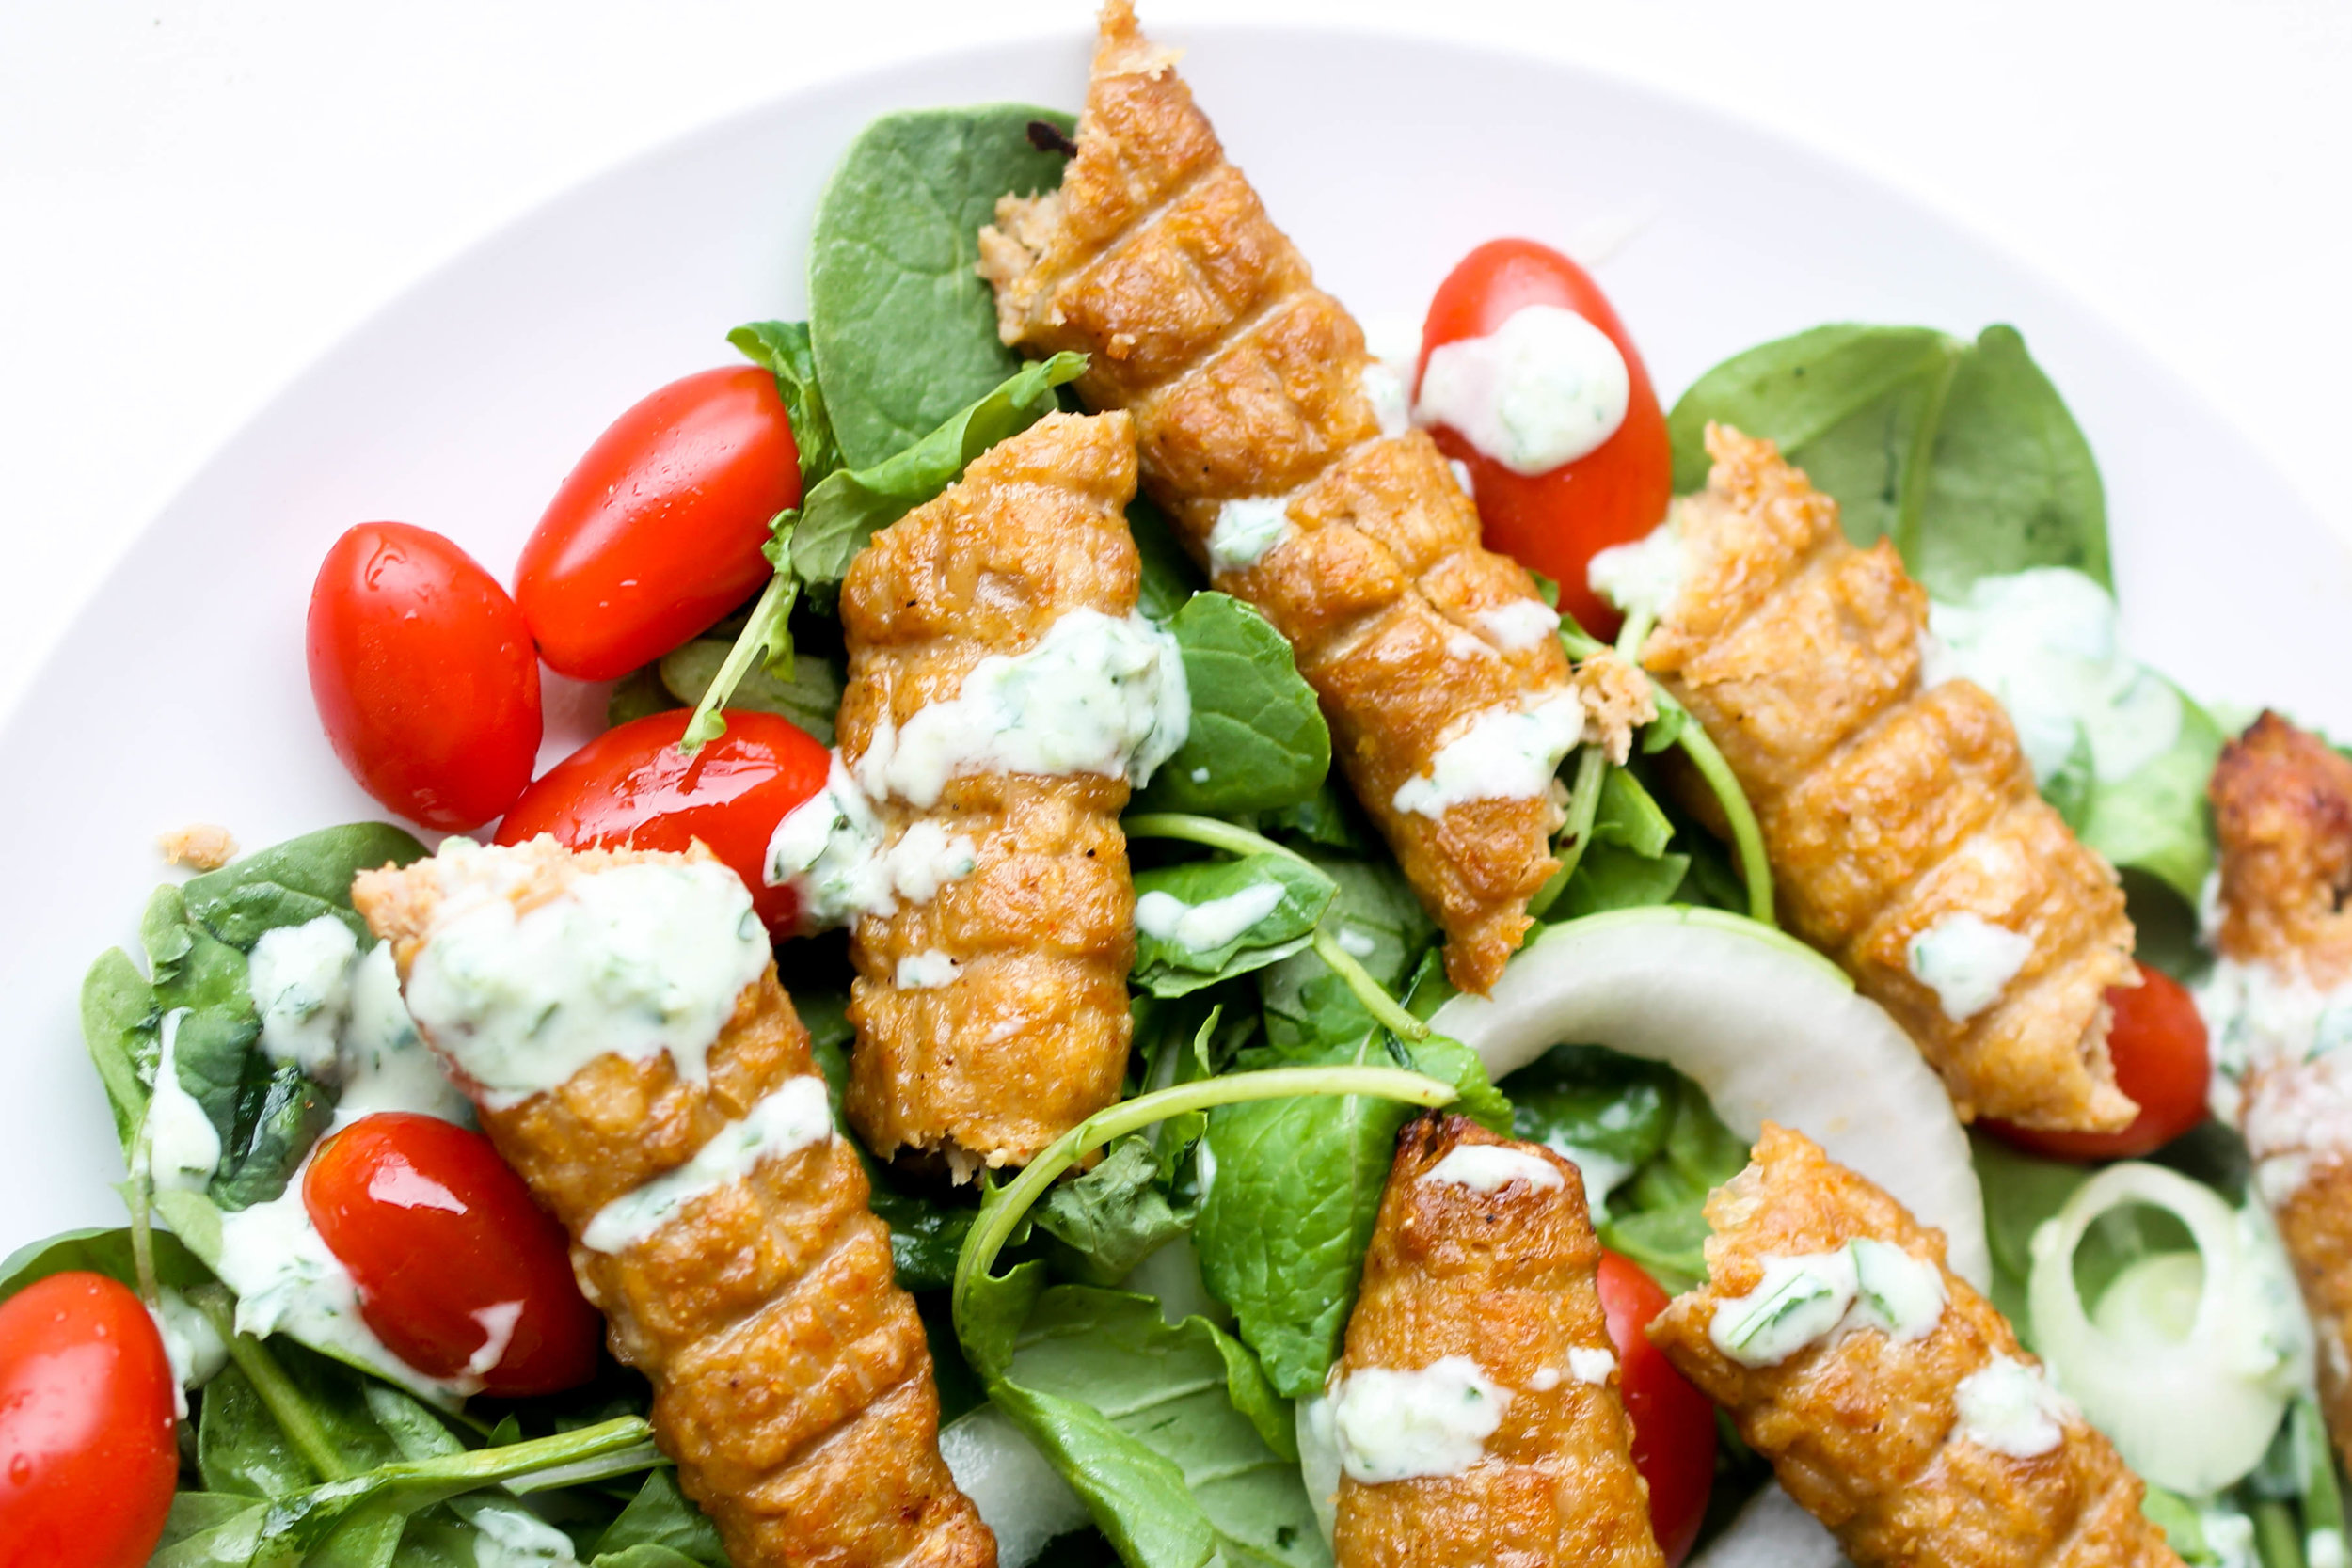 Easy Chicken Seekh Kebab is a family-friendly recipe that can be made ahead of time and enjoyed with rice, as a salad or a wrap.